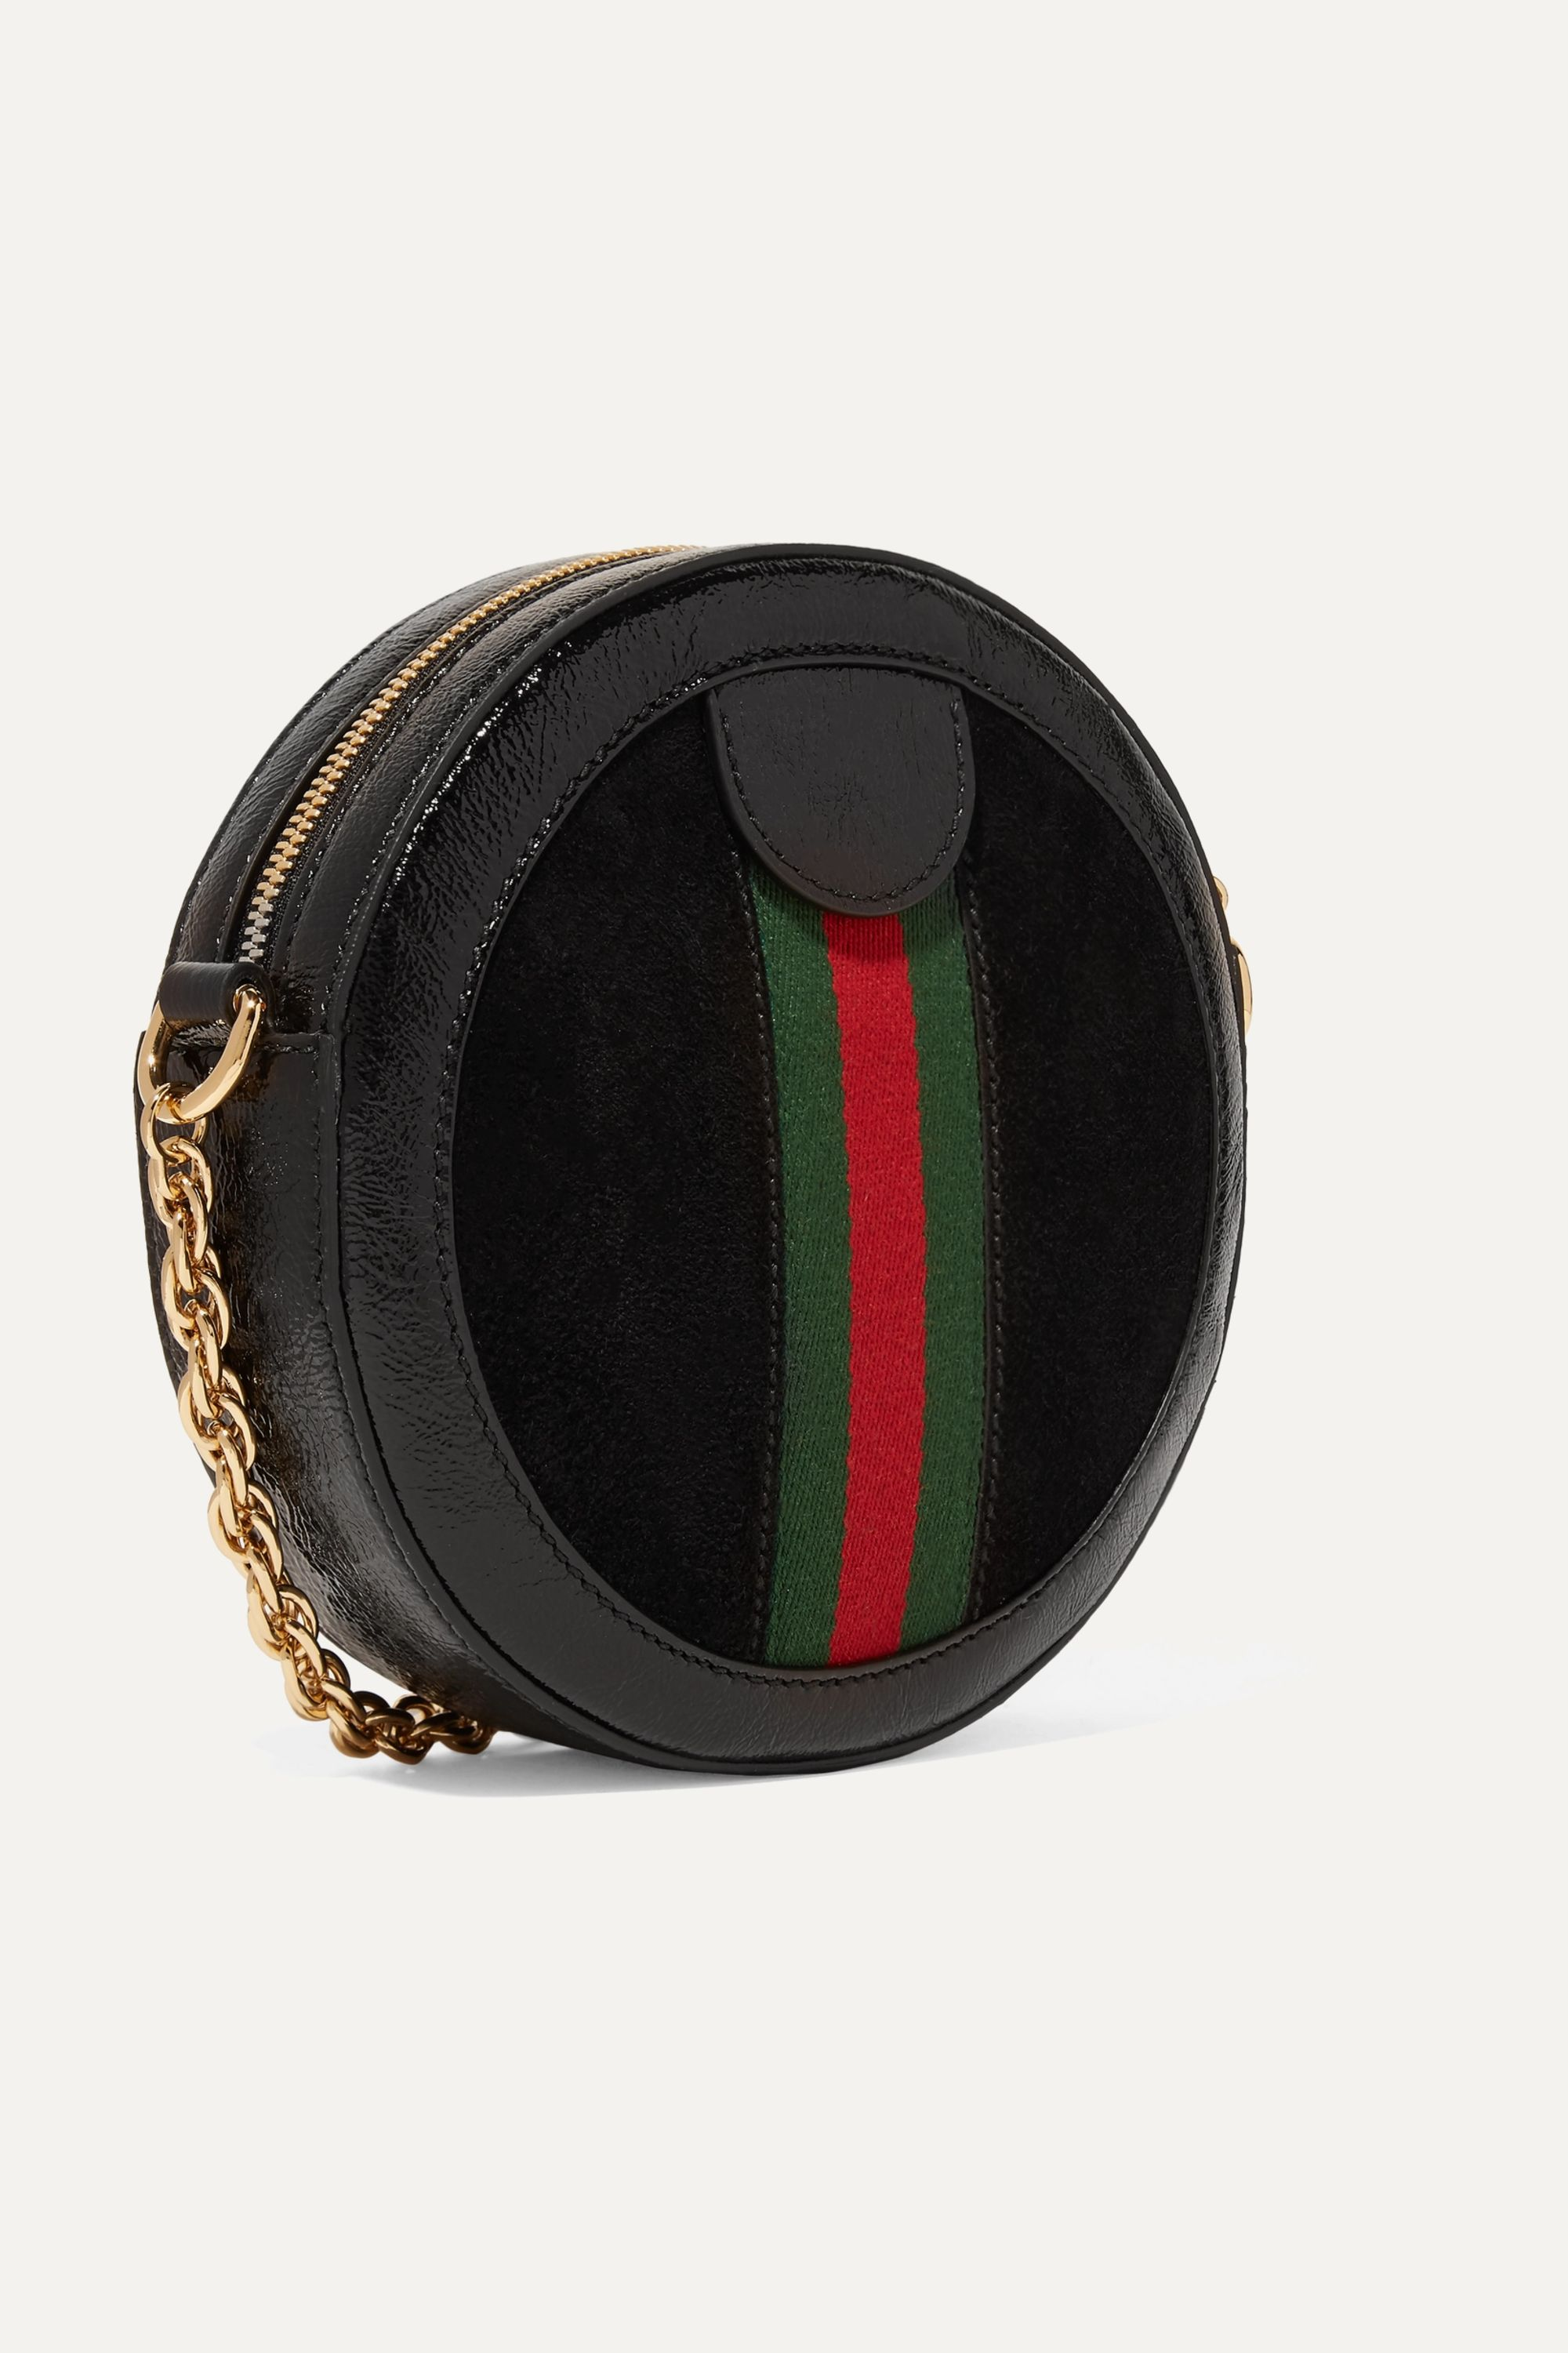 Gucci Ophidia mini patent leather-trimmed suede shoulder bag